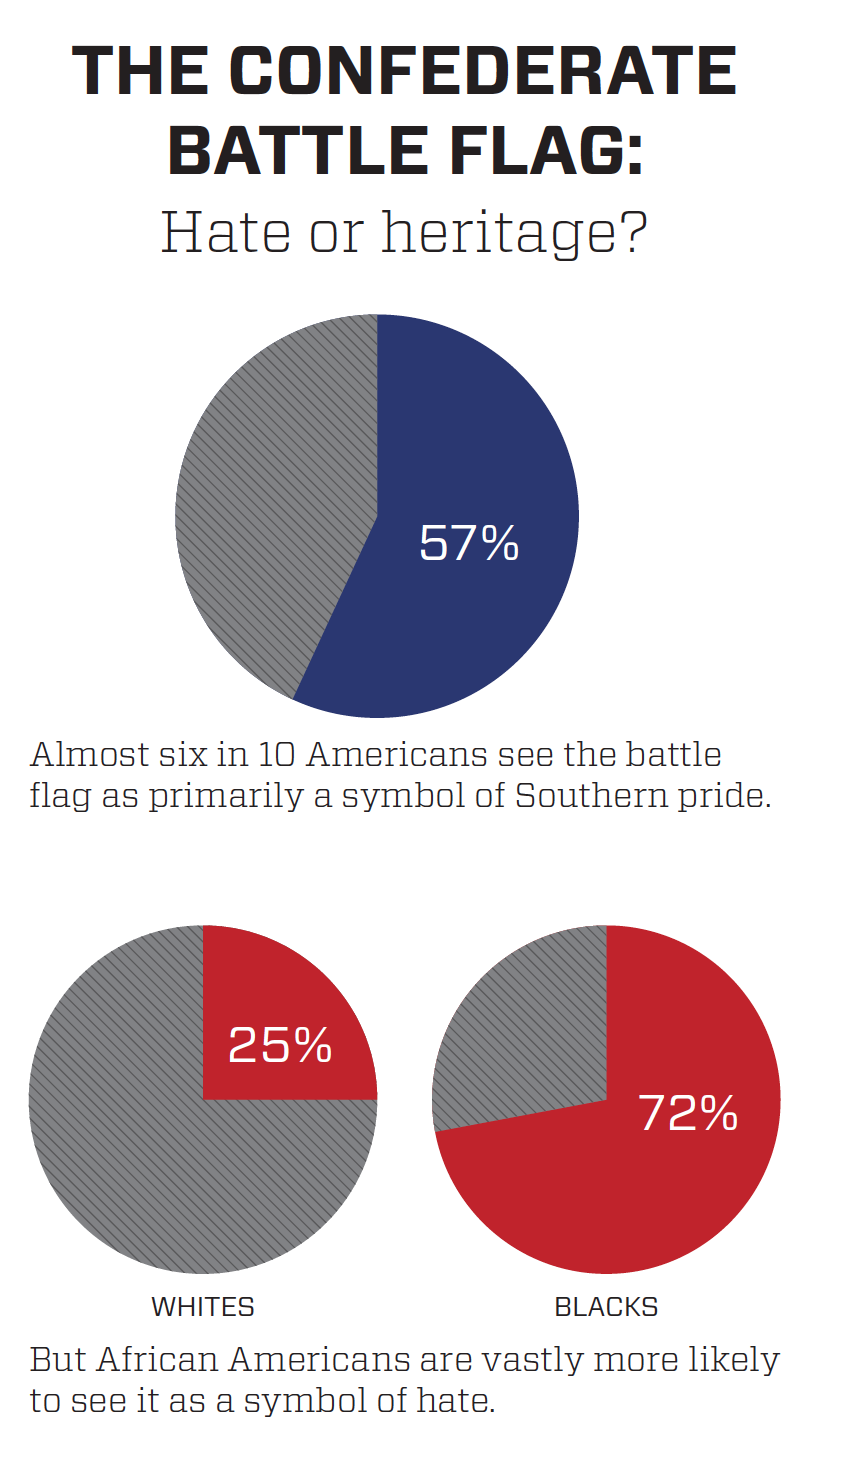 The Confederate Battle Flag: Hate or heritage charts